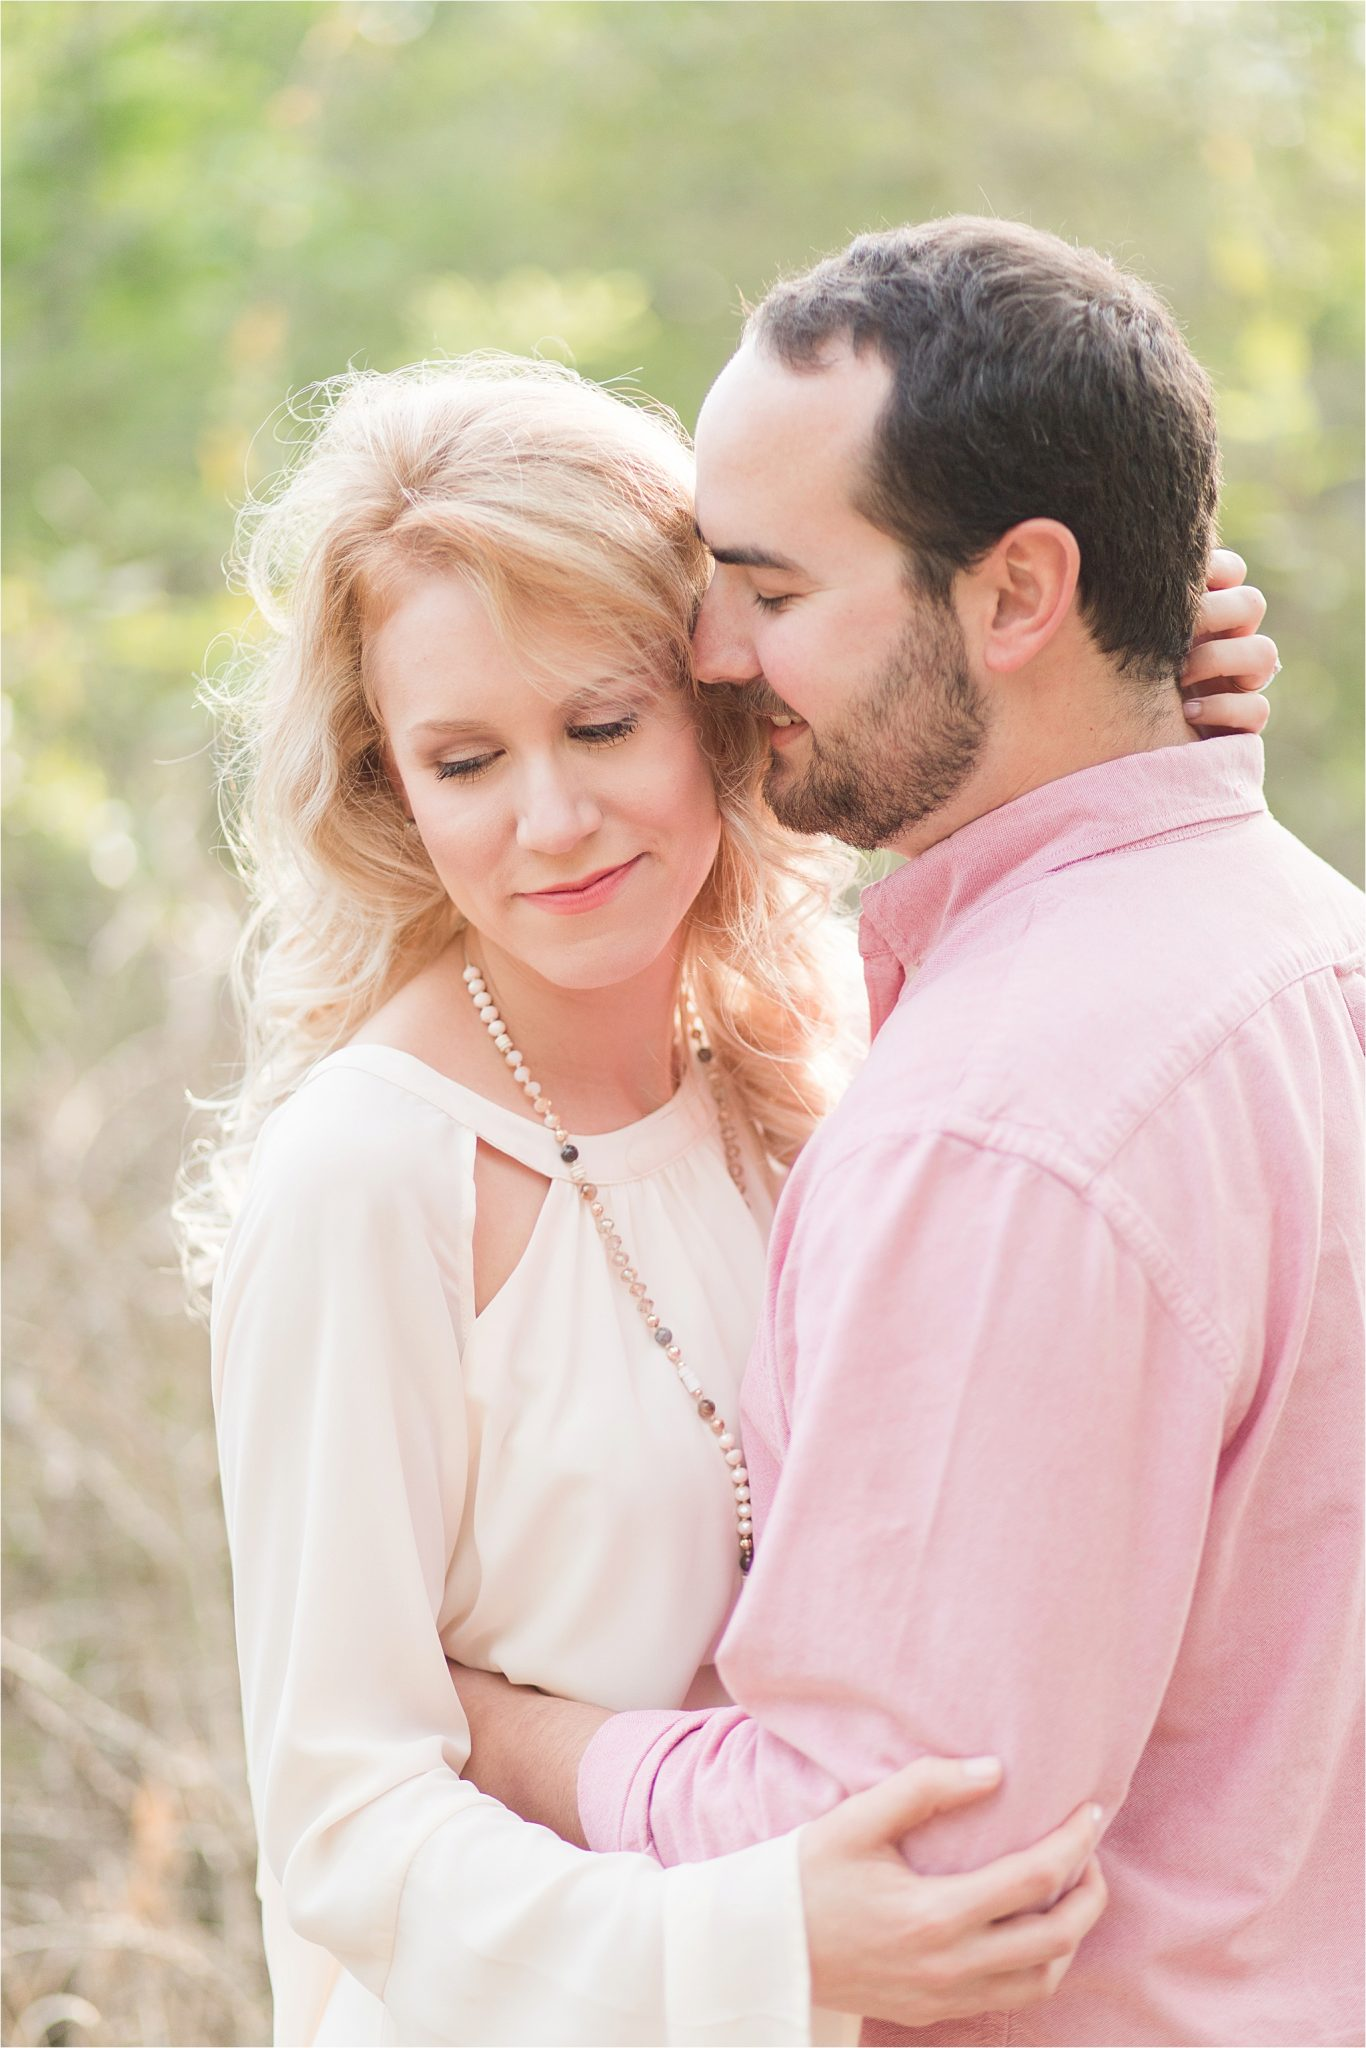 Alabama engagement session locations-Baldwin County-Blakeley State Park-Mobile Alabama wedding photographer-bride and groom-engagement photos-pastels and ivory